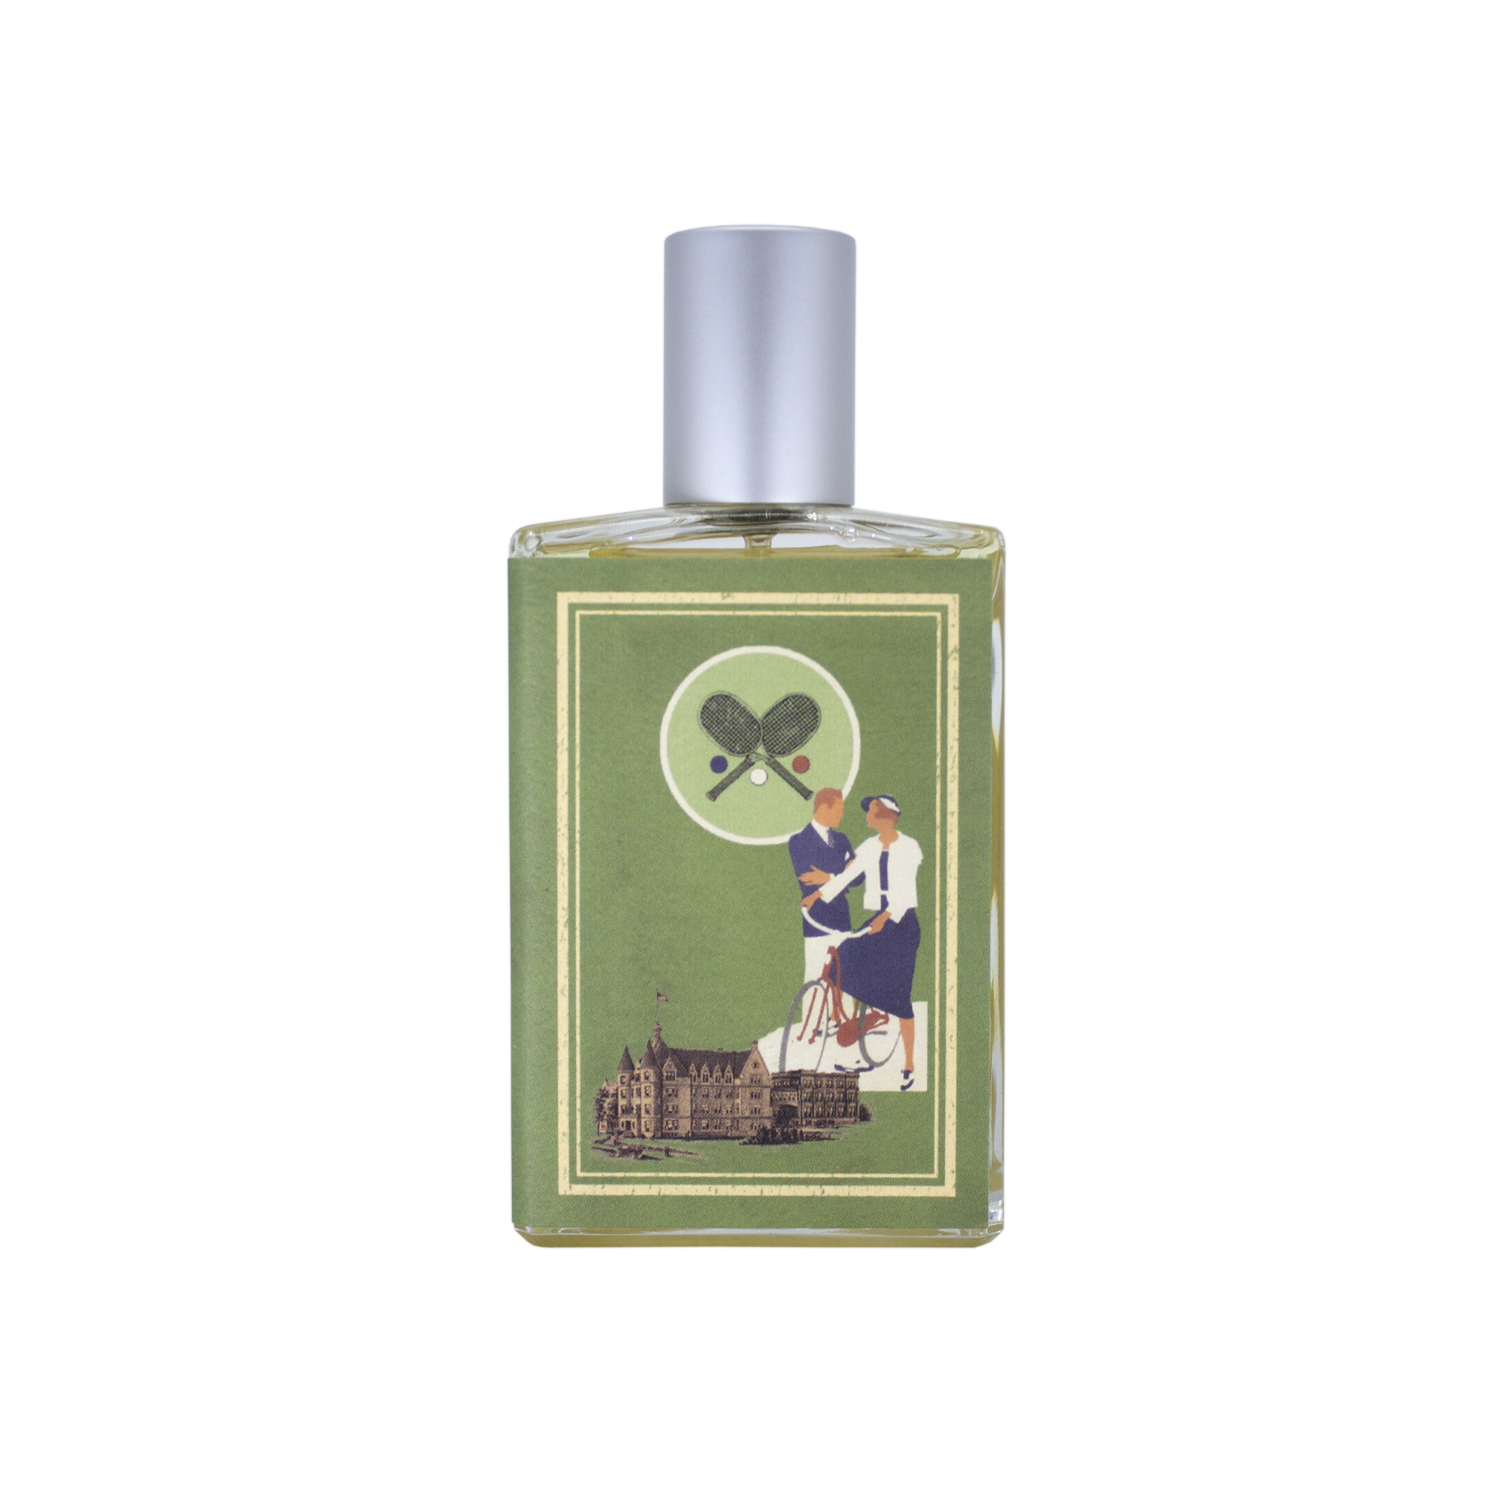 Imaginary Authors - The Soft Lawn - Eau de Parfum image